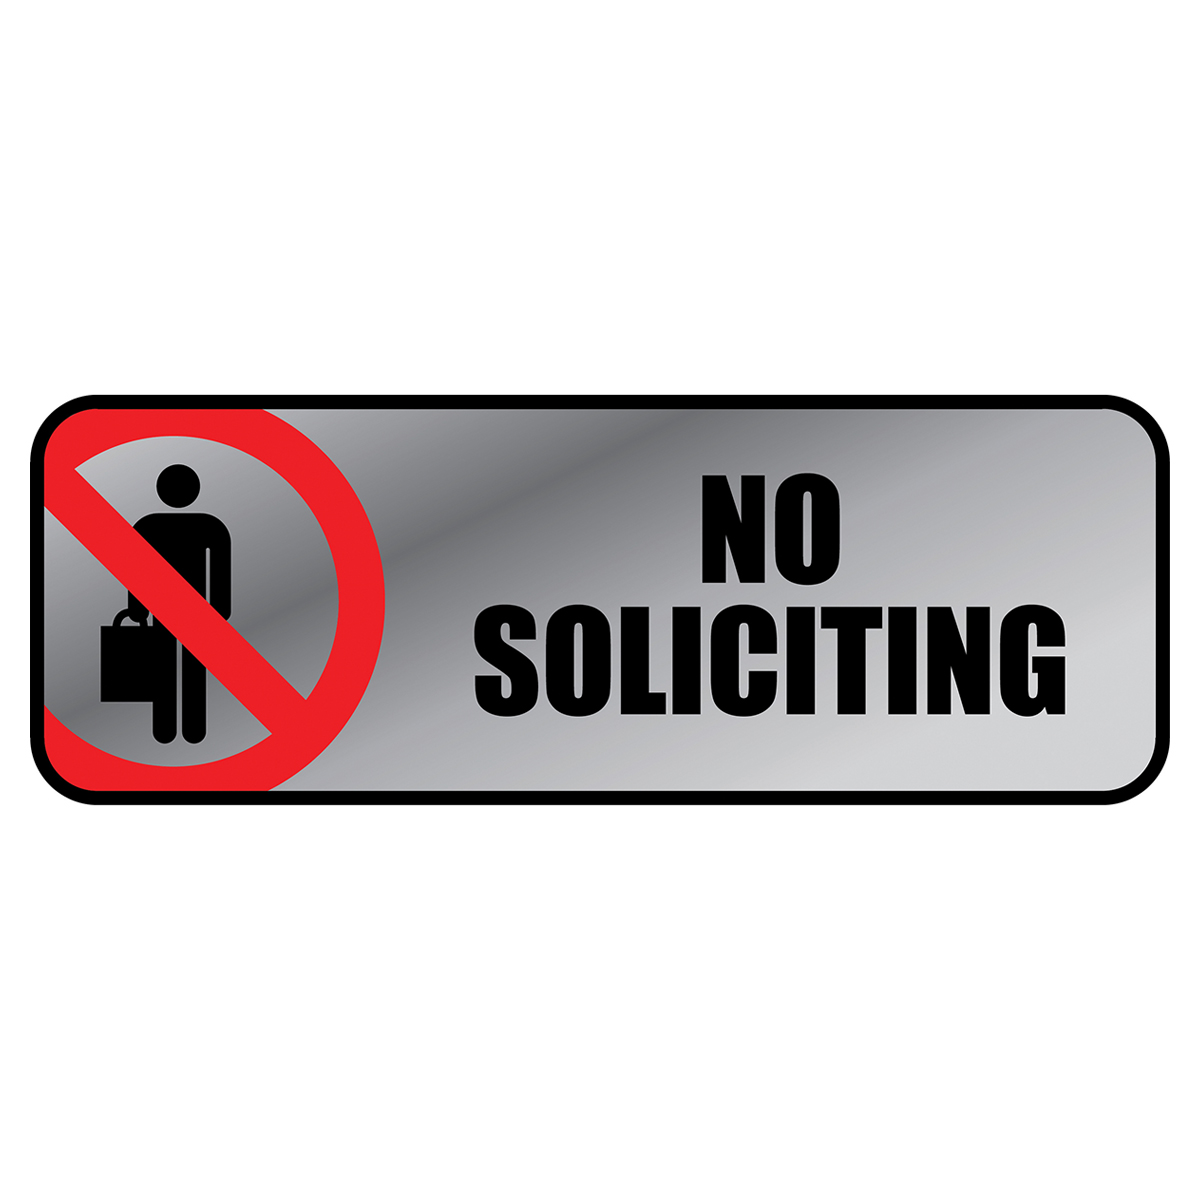 NO SOLICITING - Metal Sign - 098208